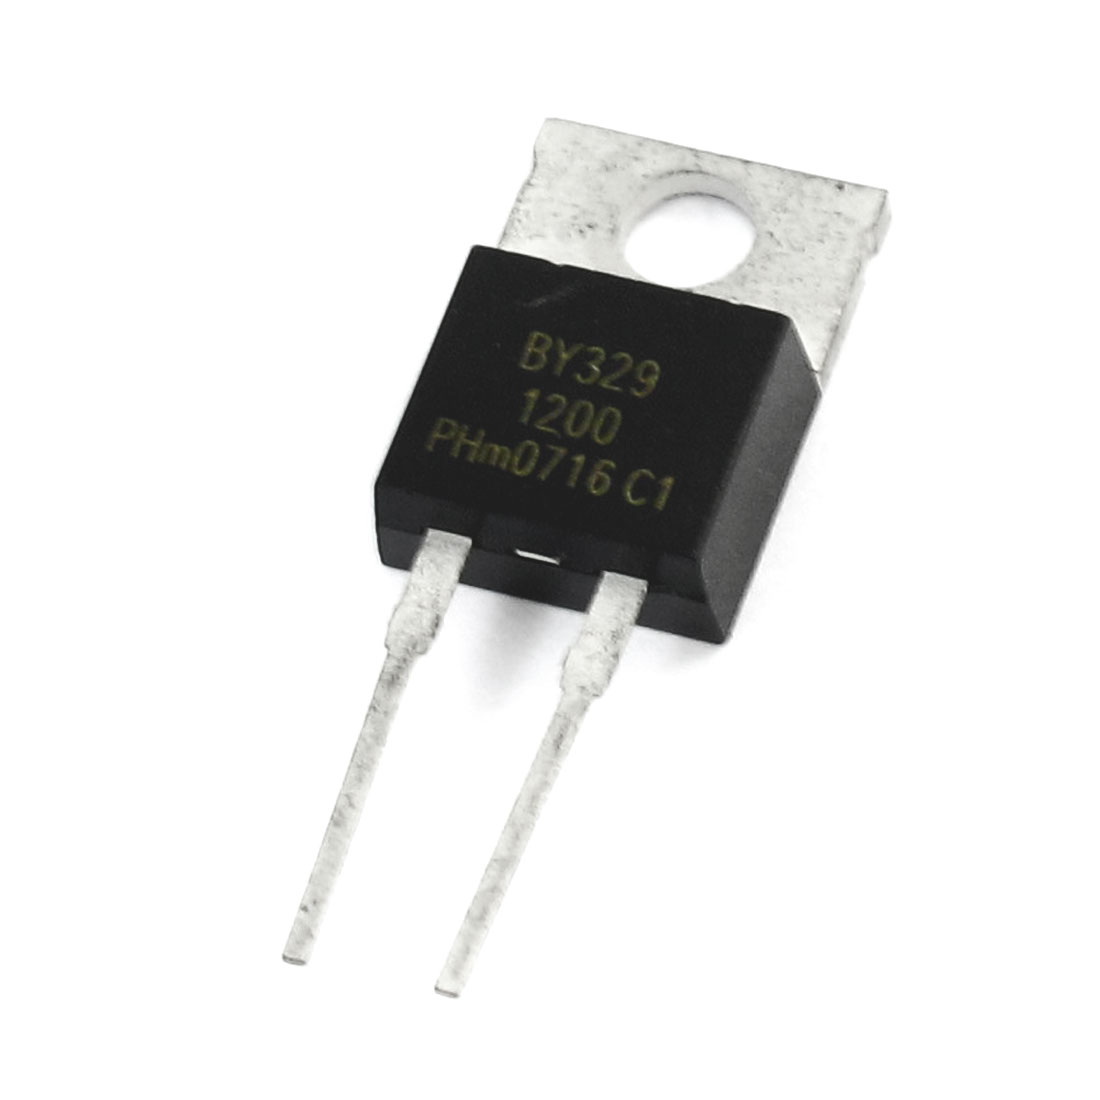 BY329-1200 8A 1200V Semiconductor Soft-recovery Rectifier Diode